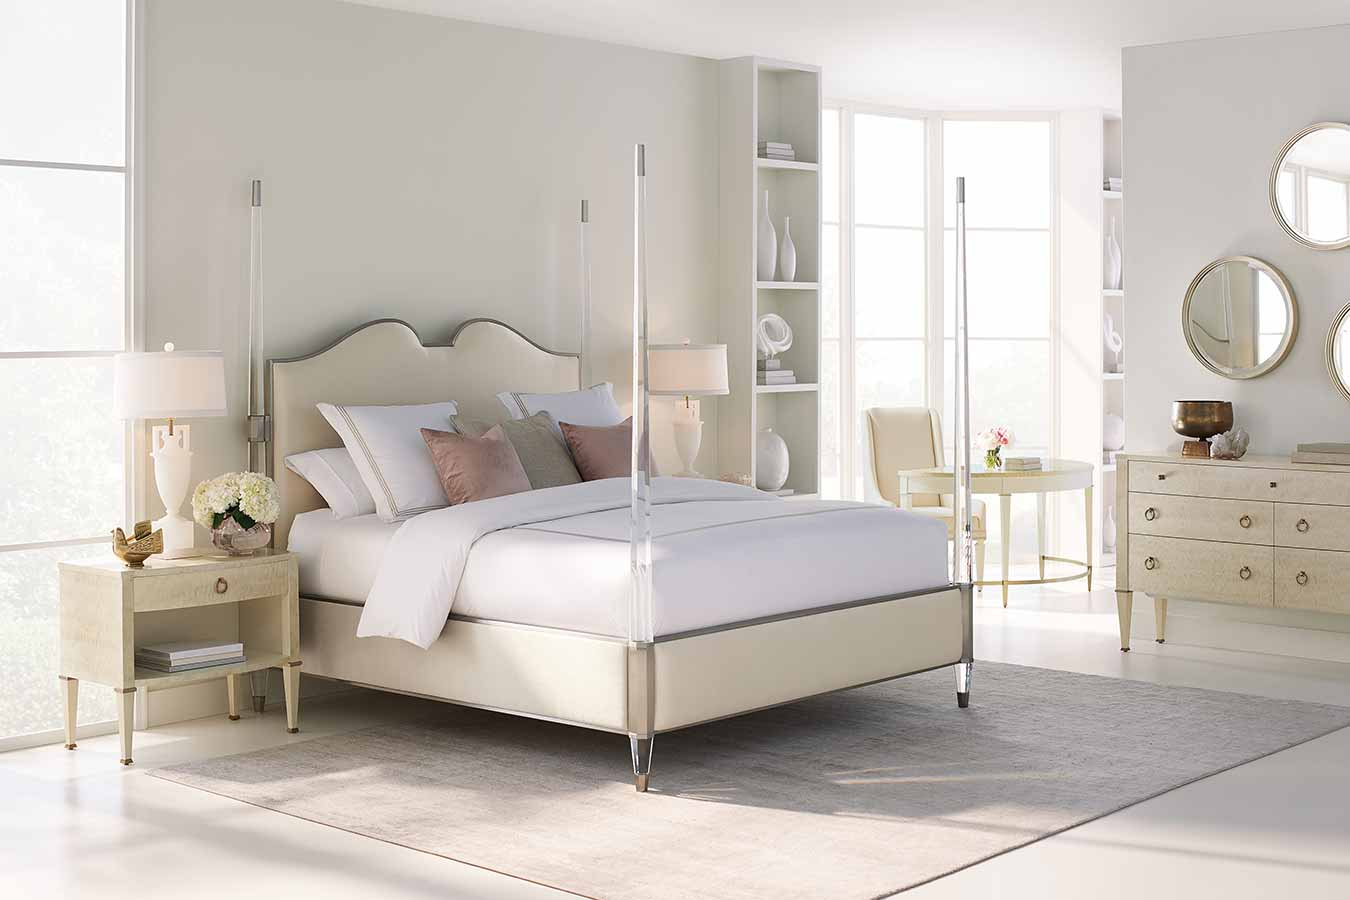 Bedroom | Contemporary Luxury Designer Modern Exclusive Handcrafted Furniture | Sandton Johannesburg